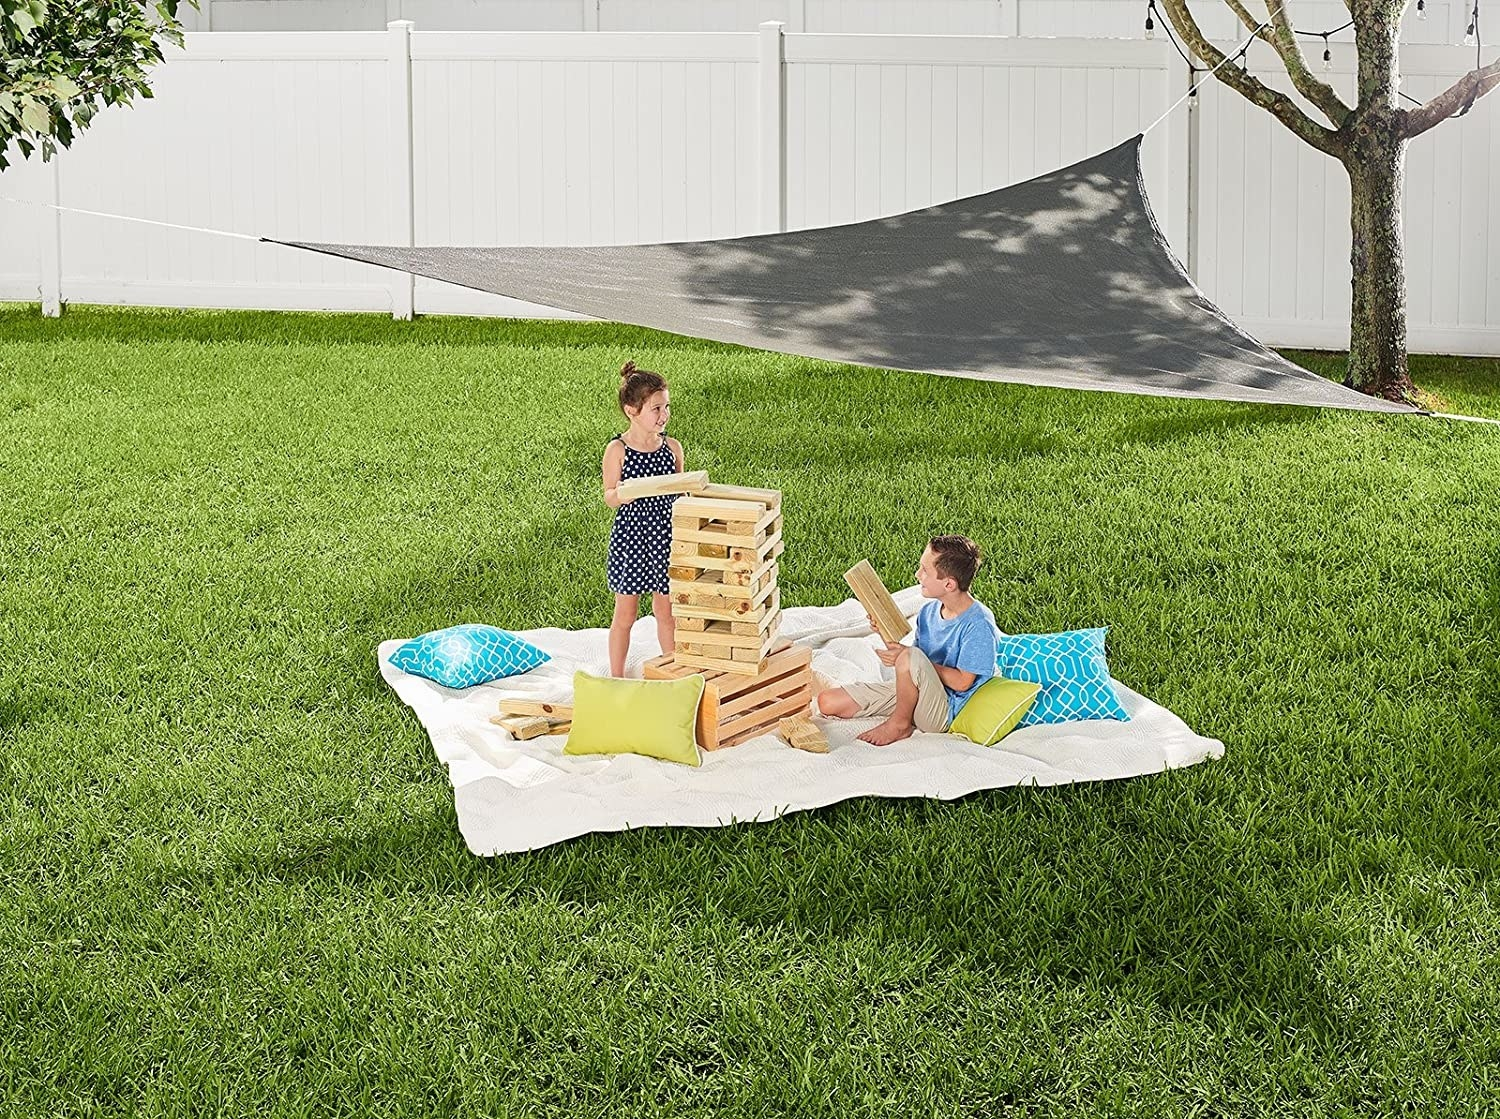 Two kids sitting on the grass with a shade over them